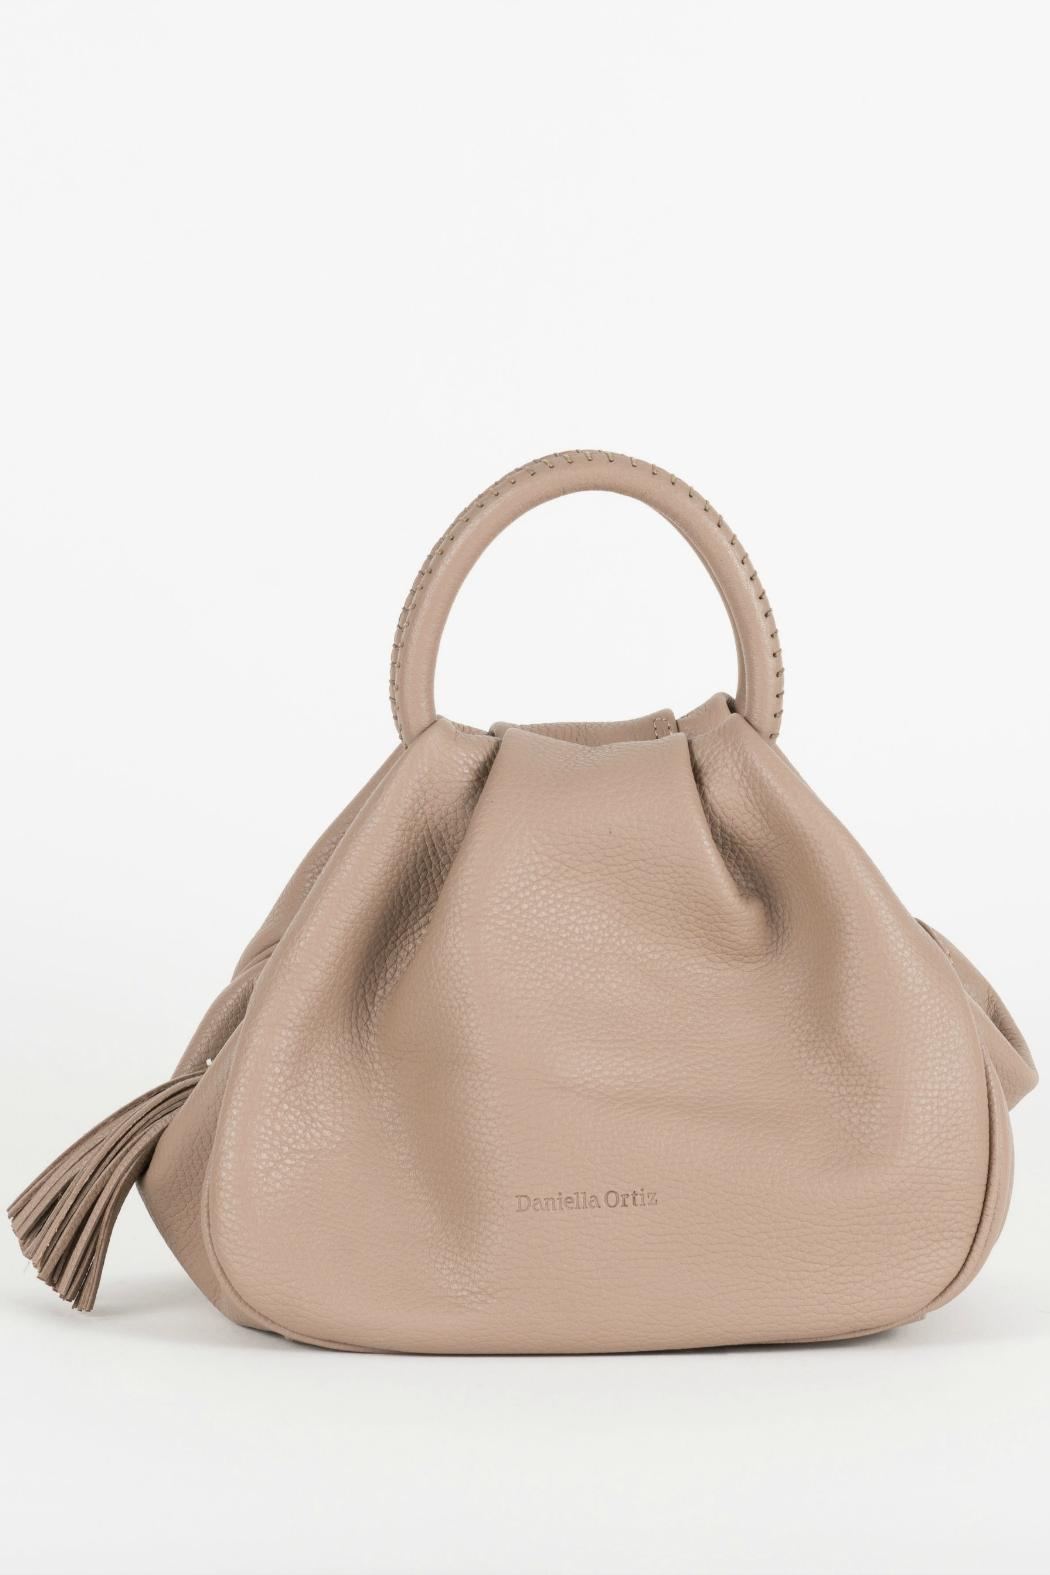 Palm Handbag Ortiz Beach — Shoptiques Gigi Daniella From Leather wFnpgHxAq